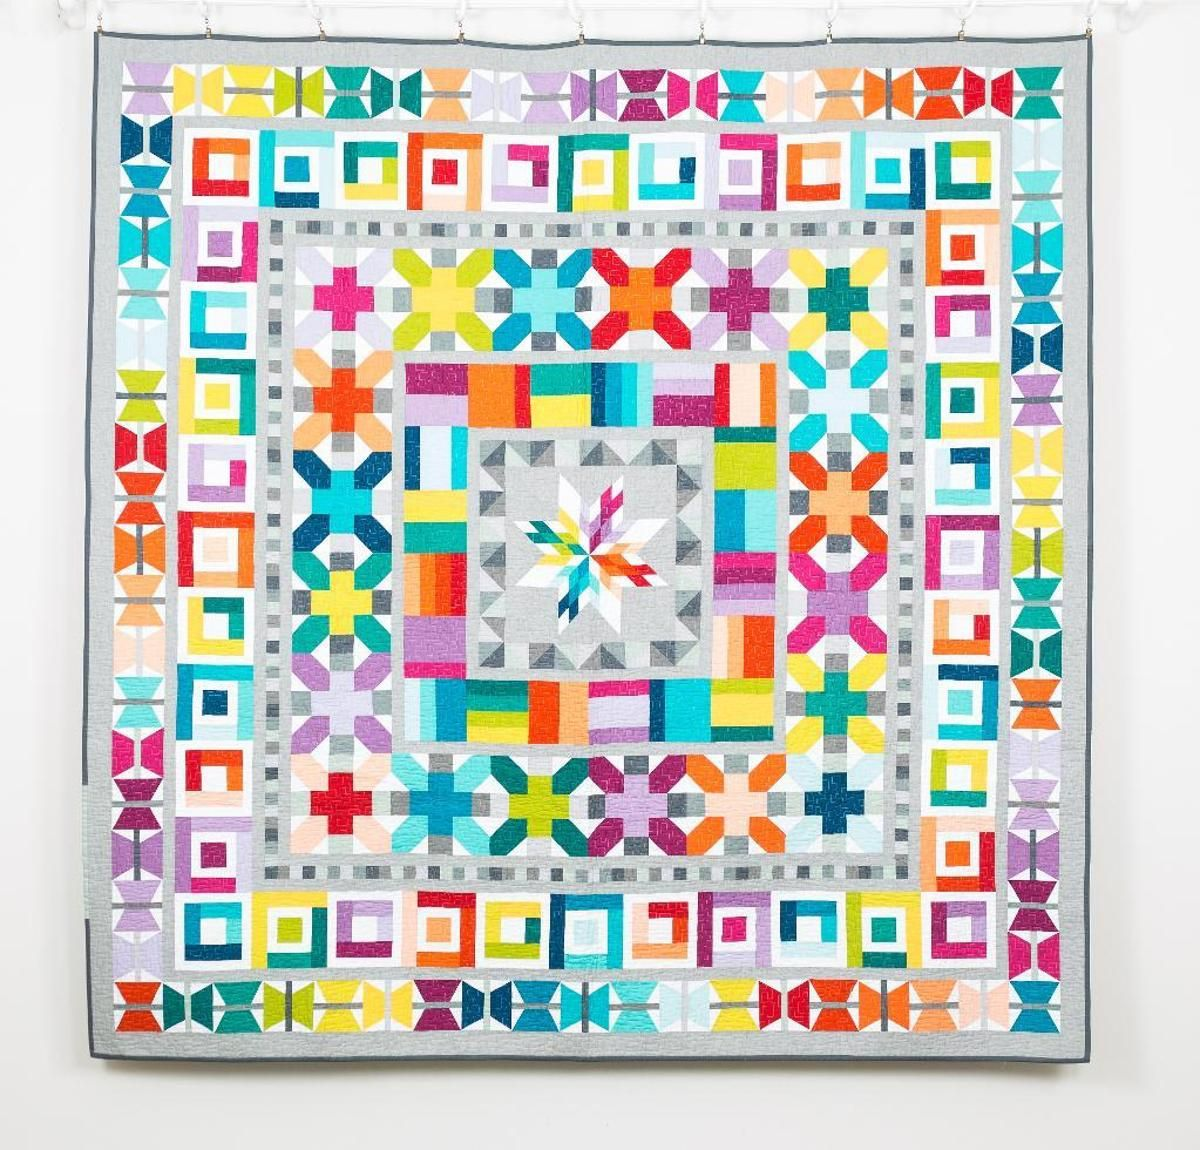 """Create a quilt as captivating as summer fireworks with the Aviatrix Medallion Quilt Kit! Your kit includes a pattern and Fat Quarter pre-cuts from the vibrant Elizabeth Hartman Designer Palette by Kona Cotton. Featuring radiant hues like Emerald green, Celestial blue and Valentine pink, this lush collection is the perfect pairing for the dazzling, geometric style of the 80"""" x 80"""" Aviatrix quilt top. Harmonious colors and an incredible array of shapes combine for a quilt that will l..."""